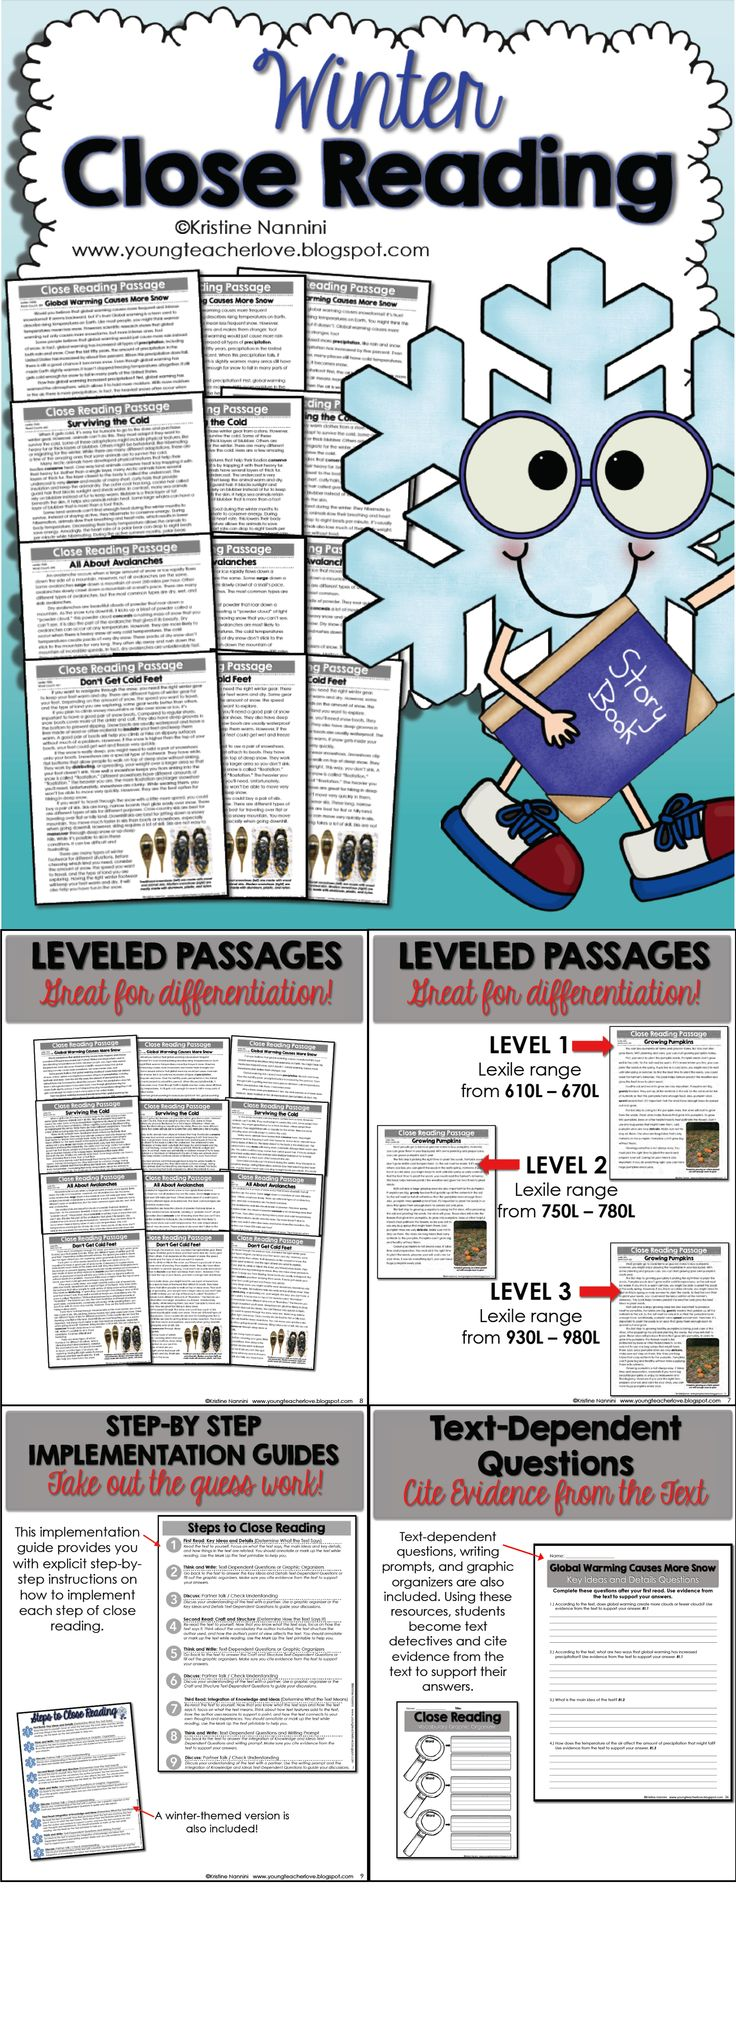 This resource contains EVERYTHING you will need to implement close reading in your classroom! Winter Close Reading Passages, Text-Dependent Questions & More! There are THREE DIFFERENT LEVELS OF EACH PASSAGE for you to easily differentiate in your classroom! There are also text-dependent questions and writing prompts for your students to cite evidence from the text, graphic organizers, step-by-step implementation guides, and more!$